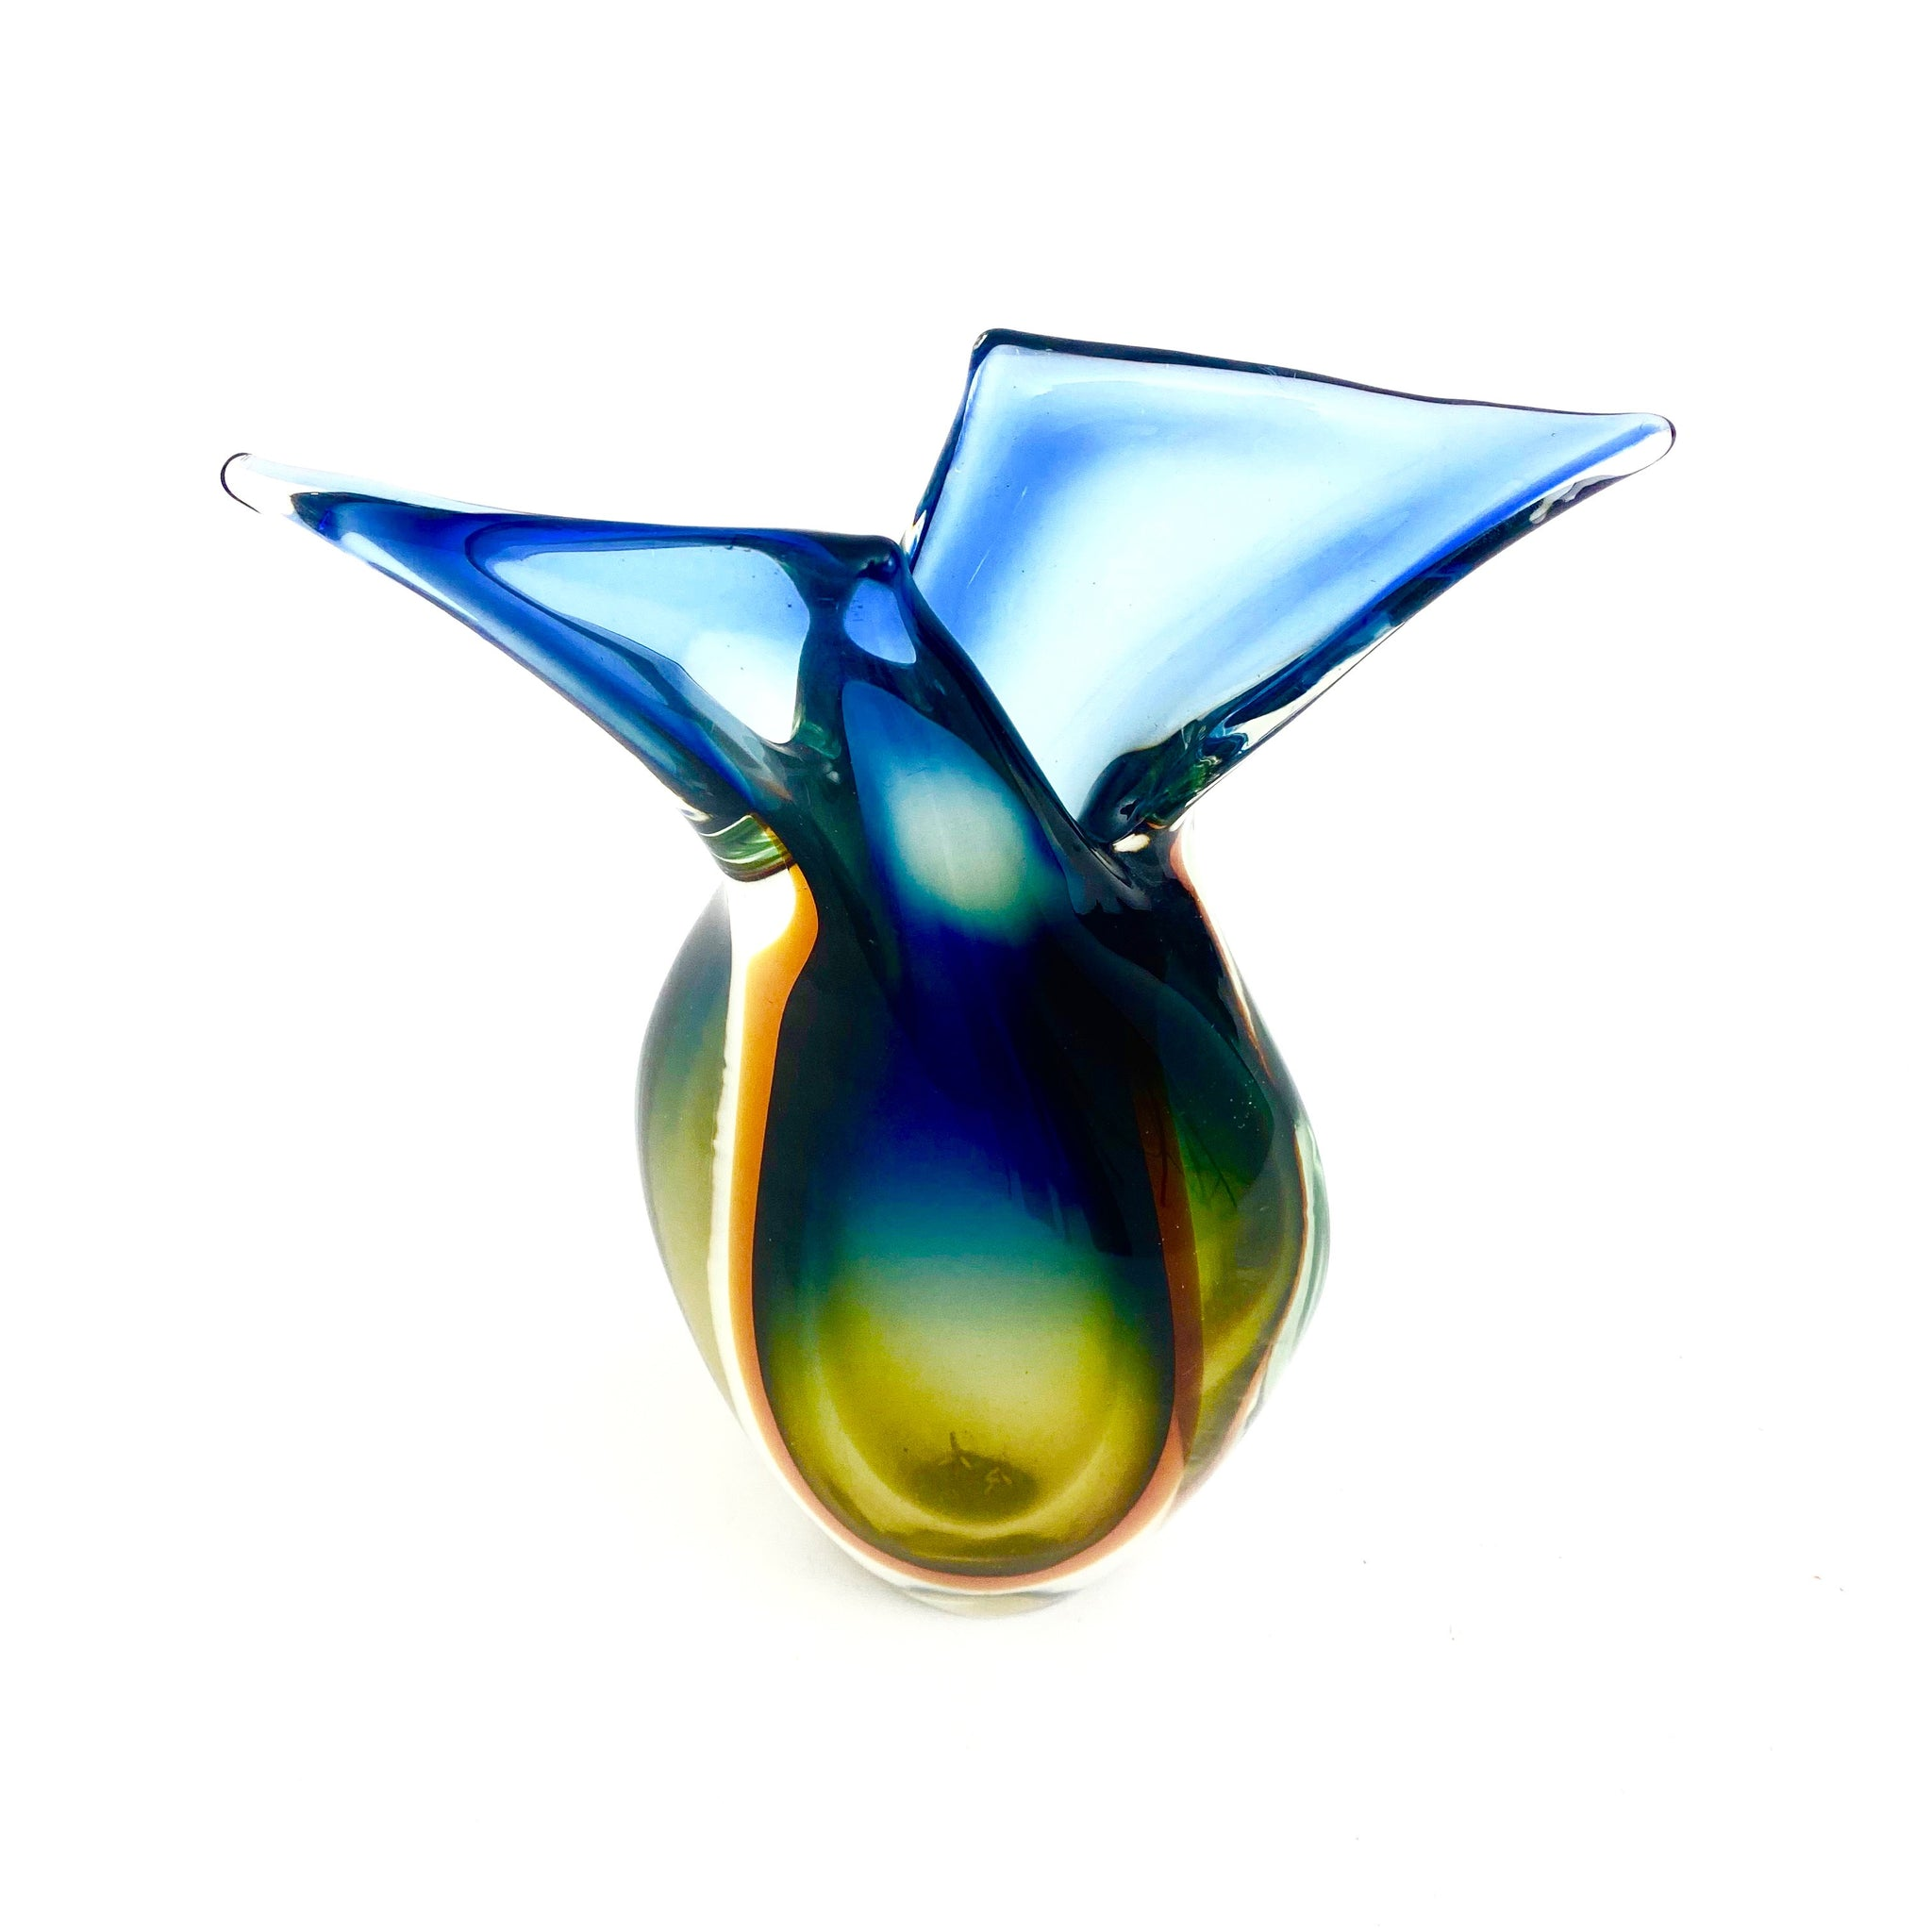 Large Murano sommerso glass vase after a design by Flavio Poli .